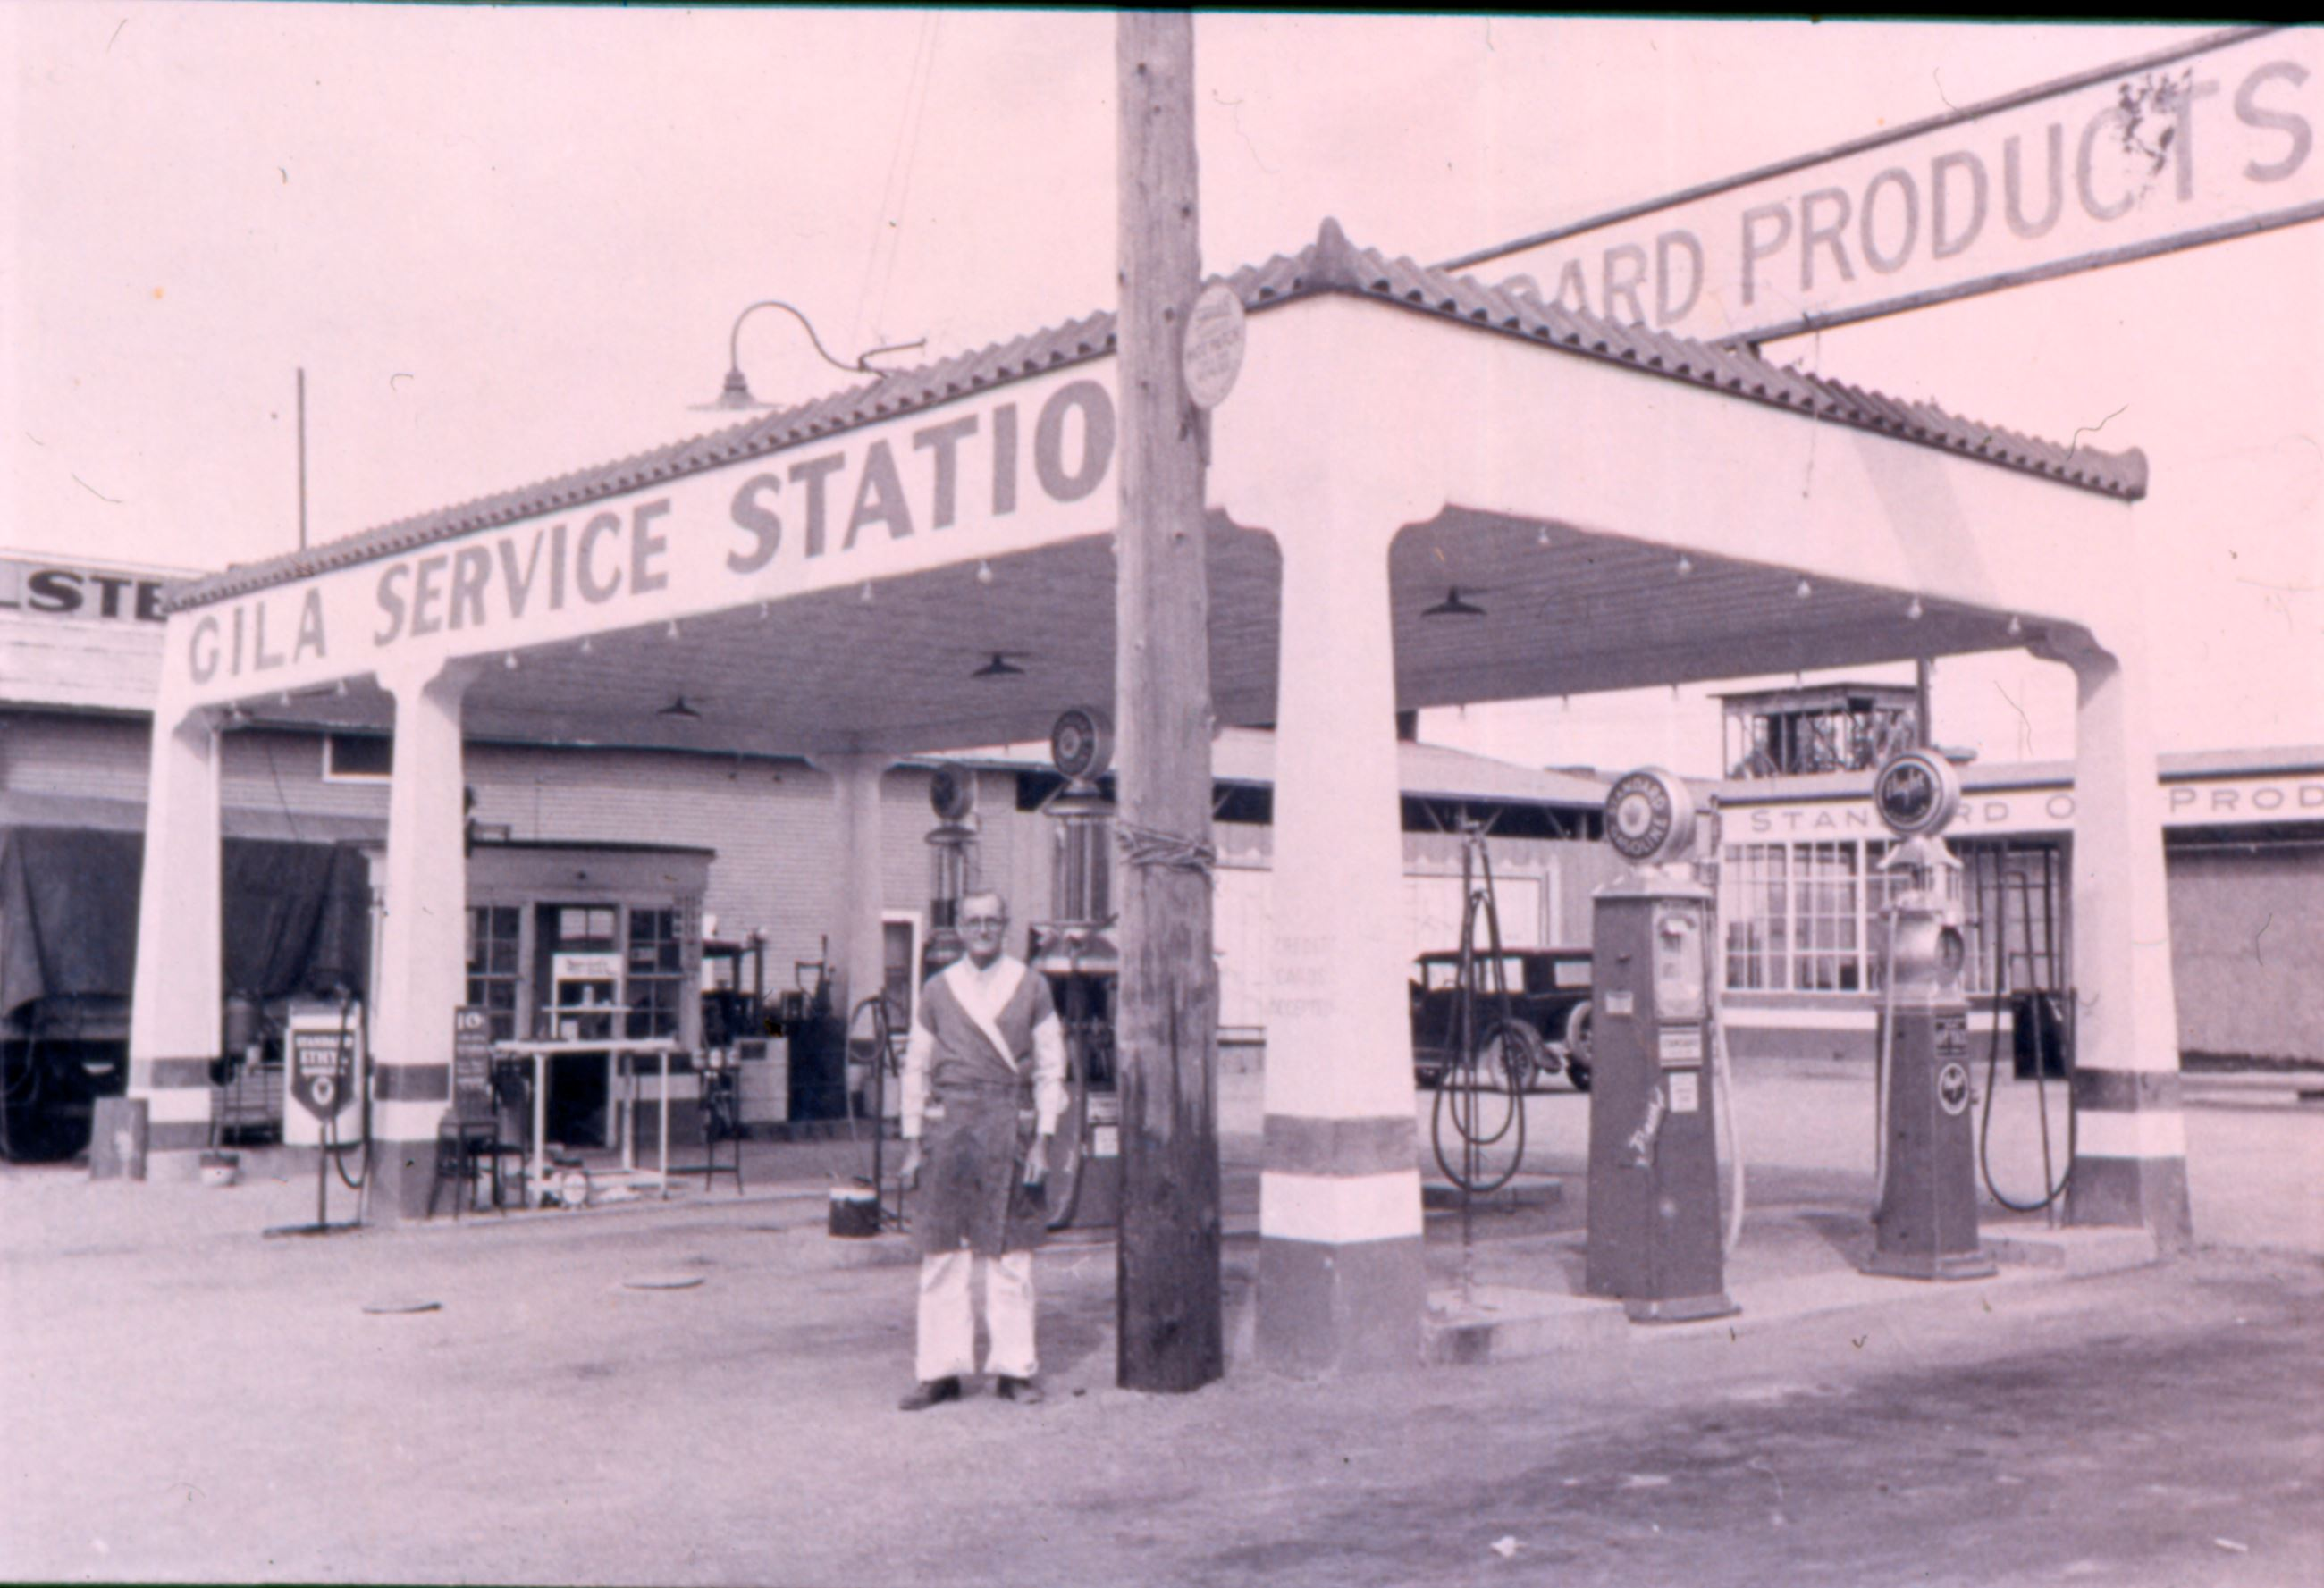 US 80, Gila Bend, Gila Station, 1930s Photo courtesy Dave Devine